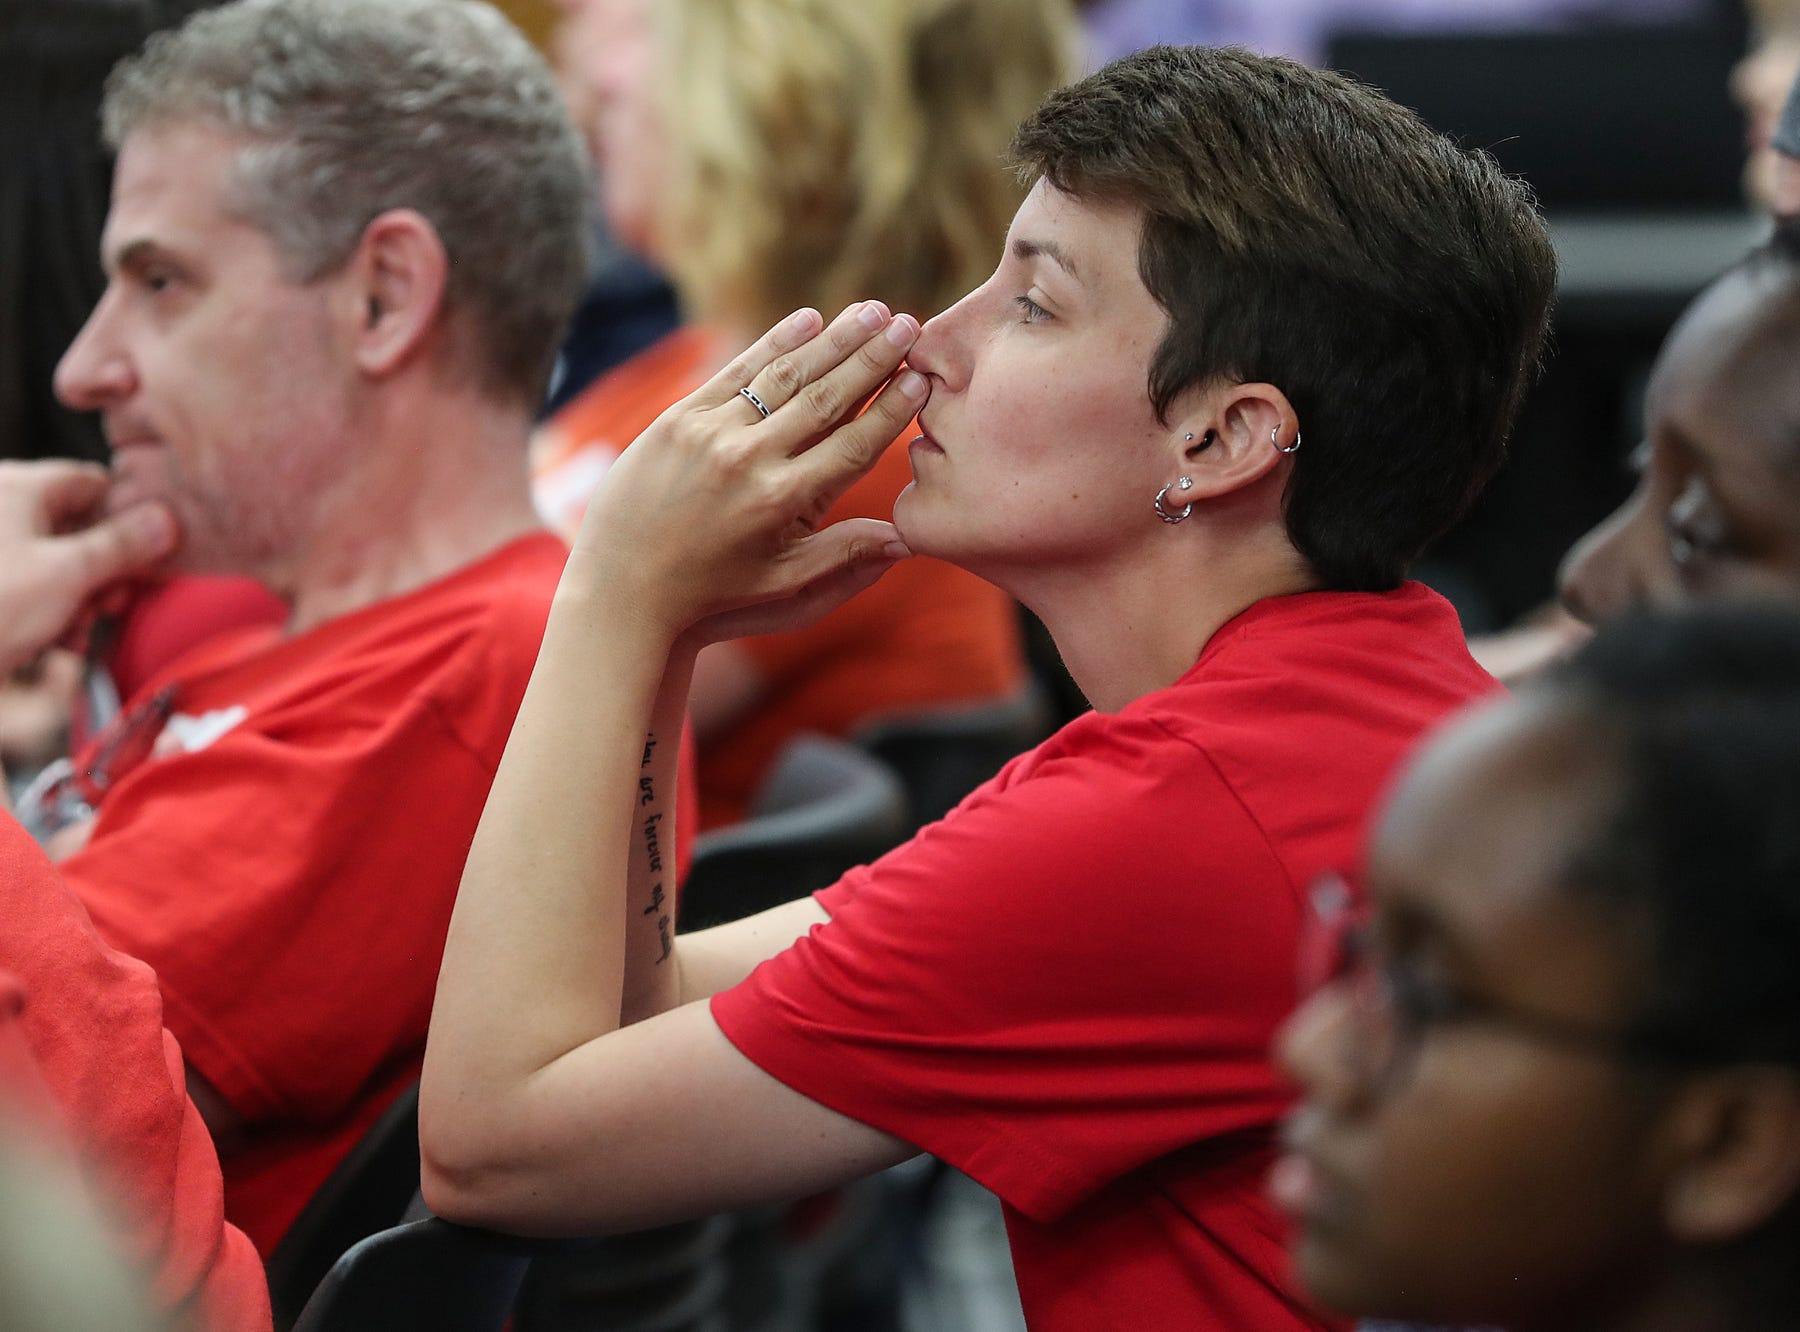 Crystal Osborne attends the Hamilton Southeastern Schools board meeting in support of her child, at Cumberland Road Elementary in Fishers, Ind., Wednesday, May 8, 2019. The board voted 5-2 to adopt an anti-discrimination policy including language specifically prohibiting discrimination and harassment based on gender identity and sexual orientation.